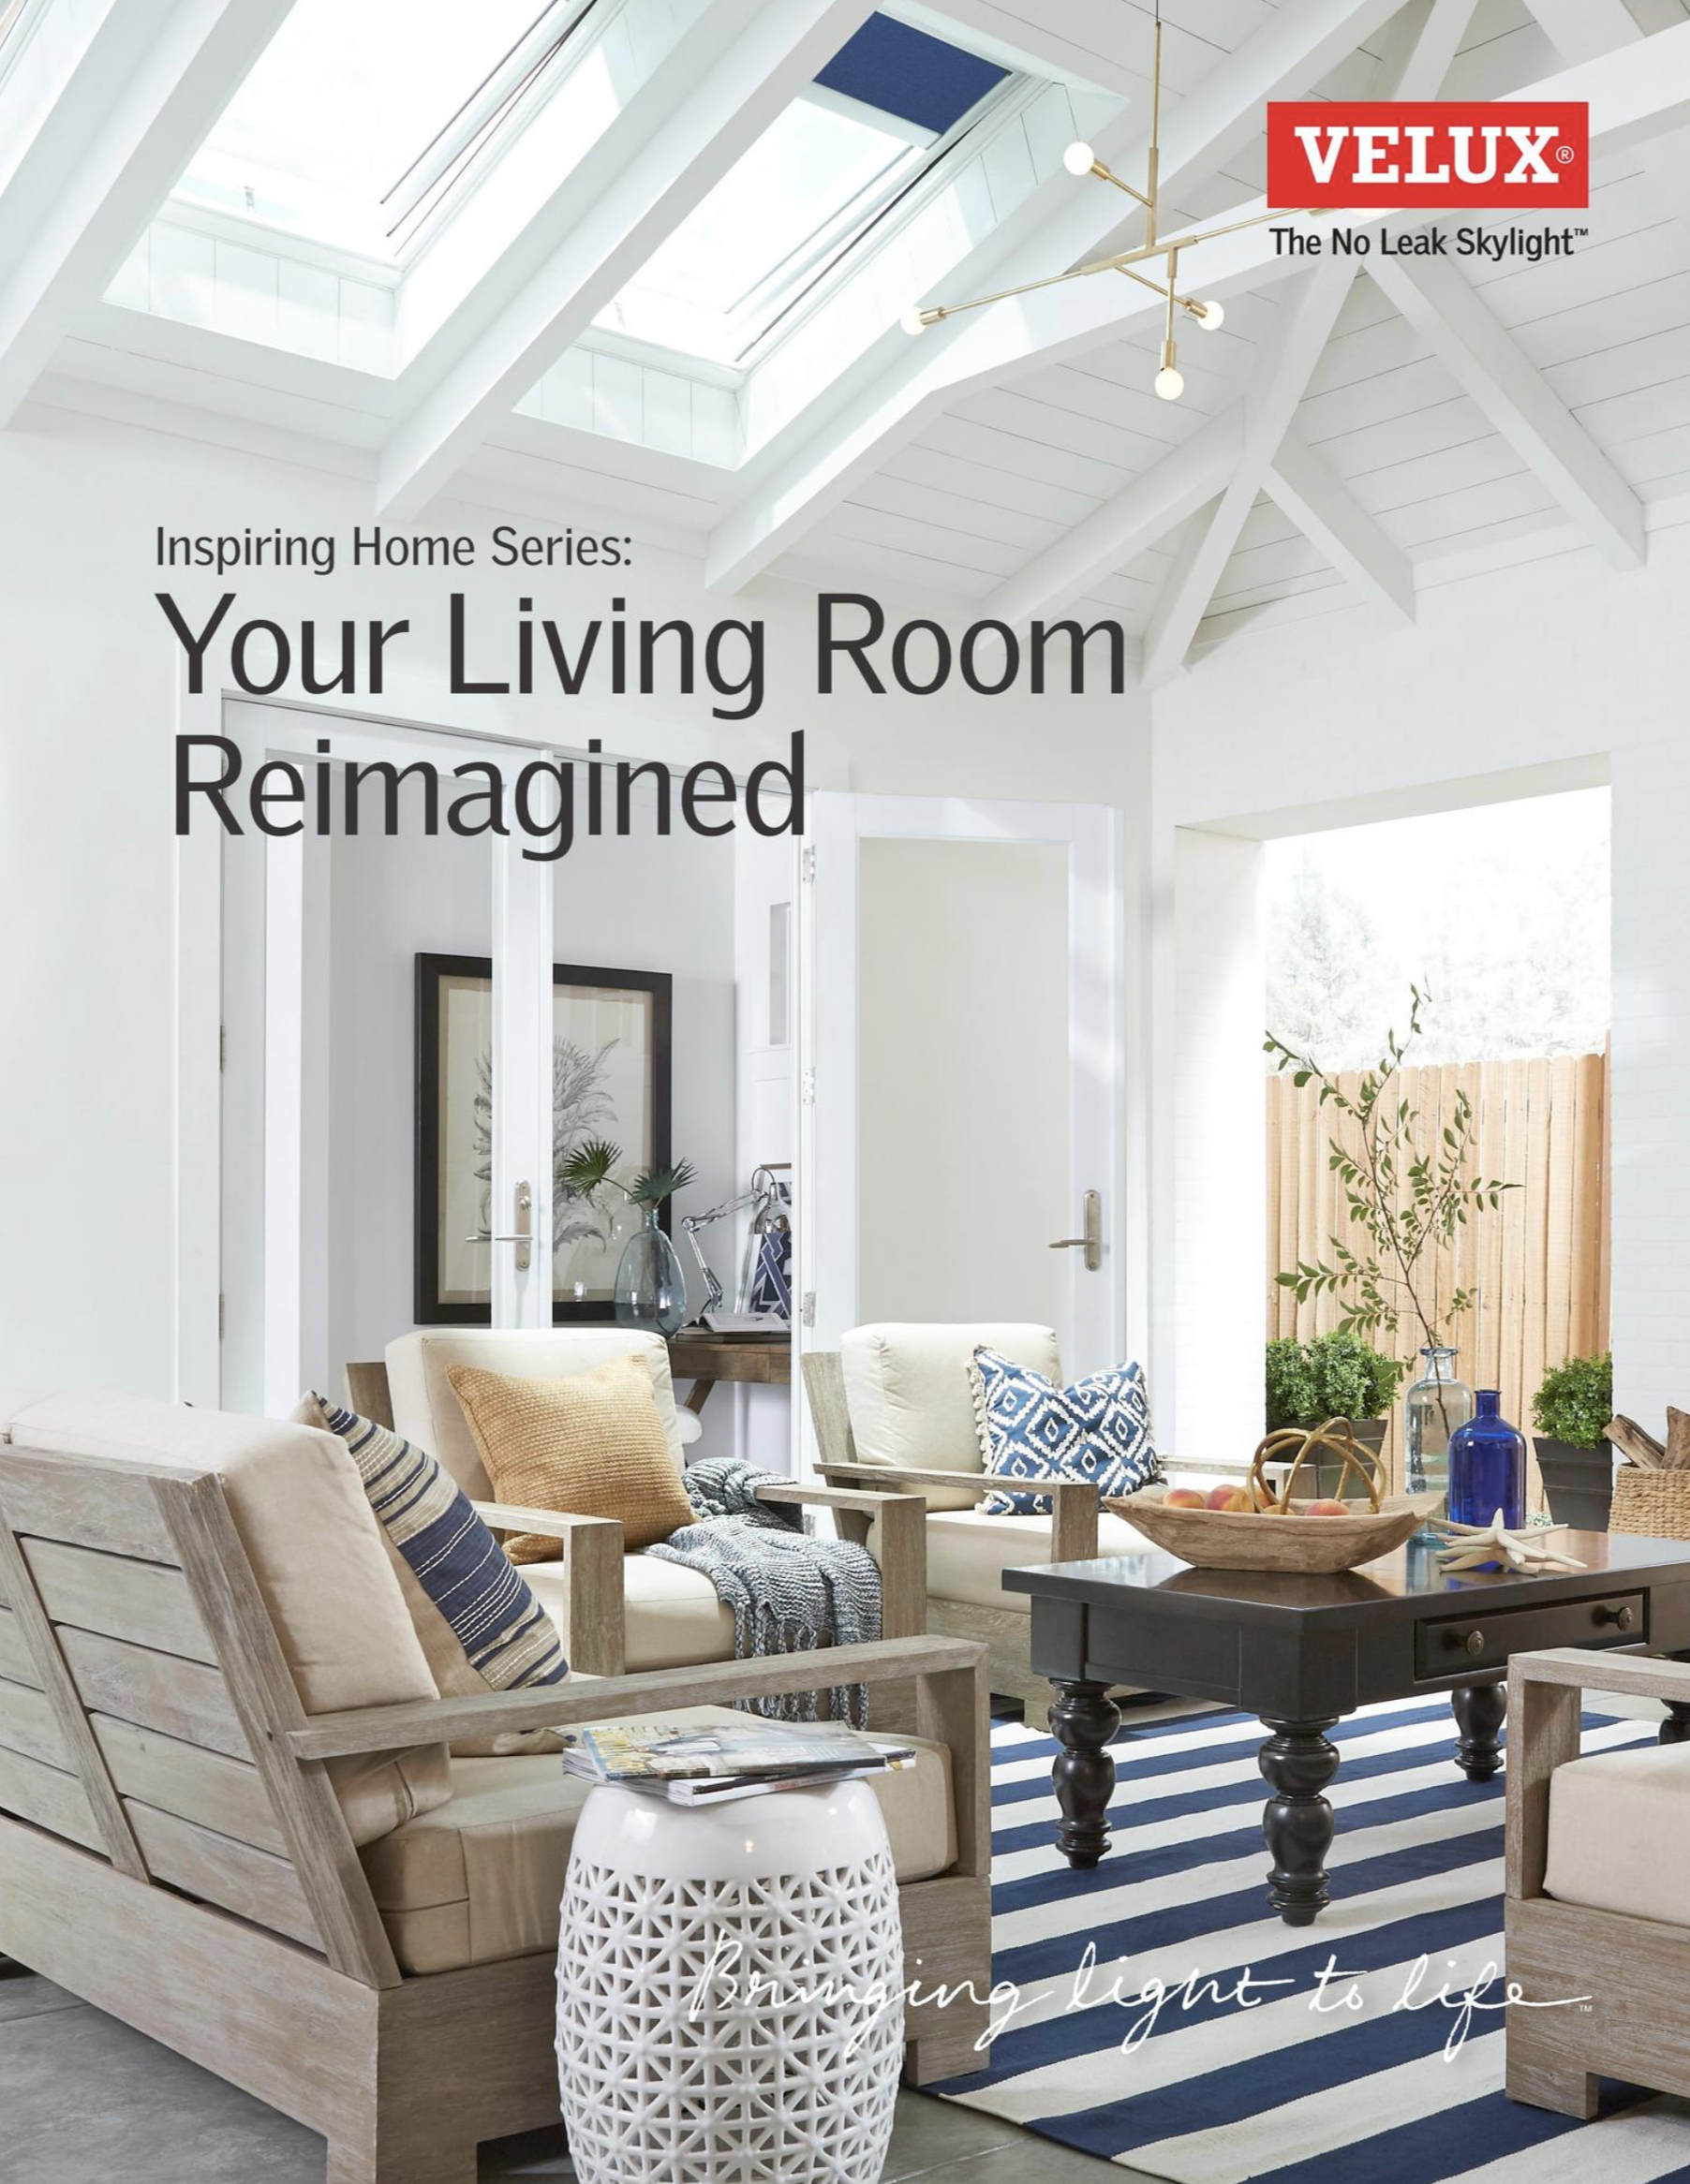 Download Your Skylight Guide for Your Living Room